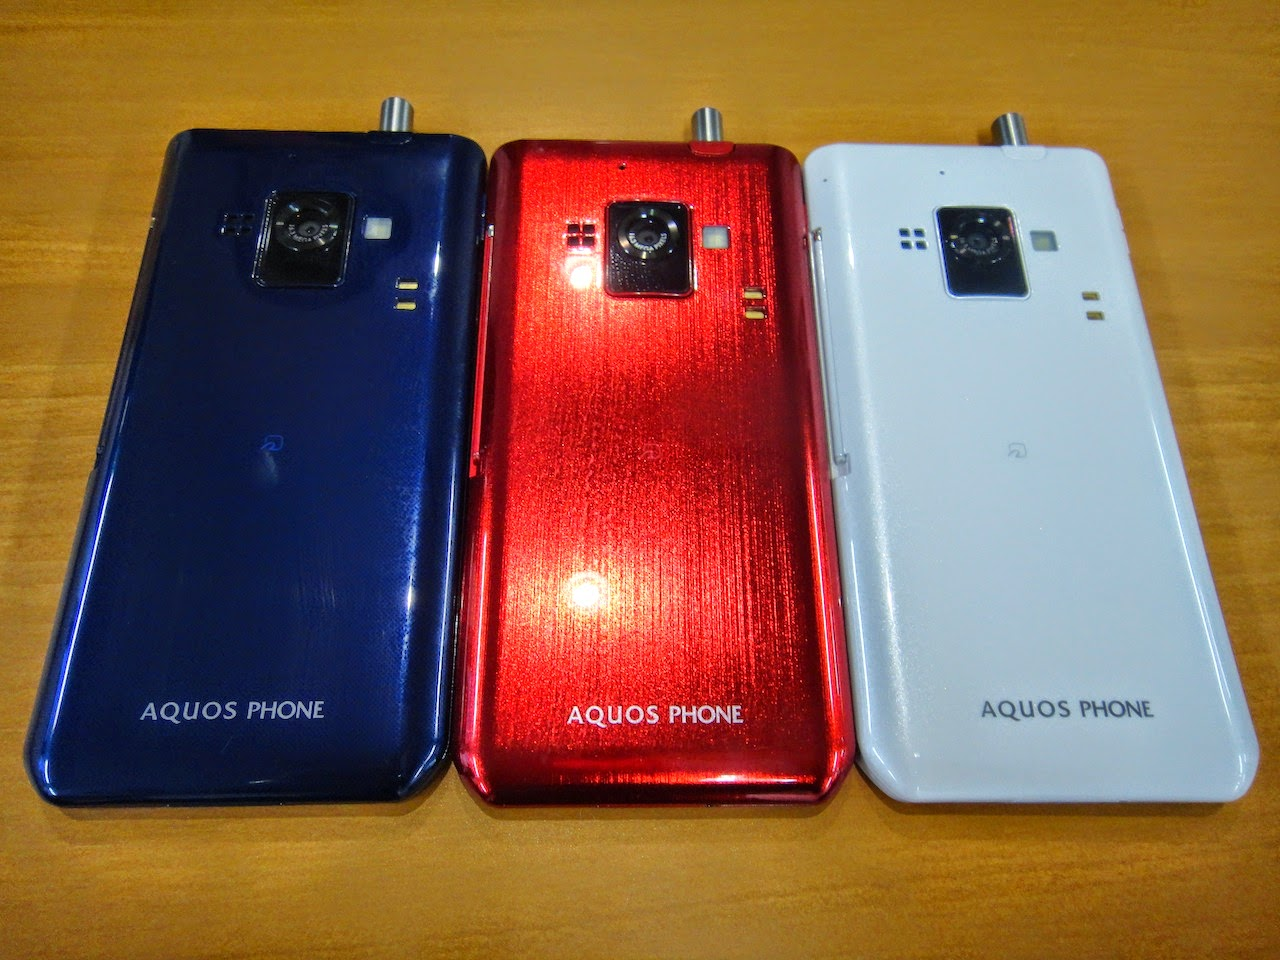 Japan Mobile Tech: Who gets an OTA official docomo update to